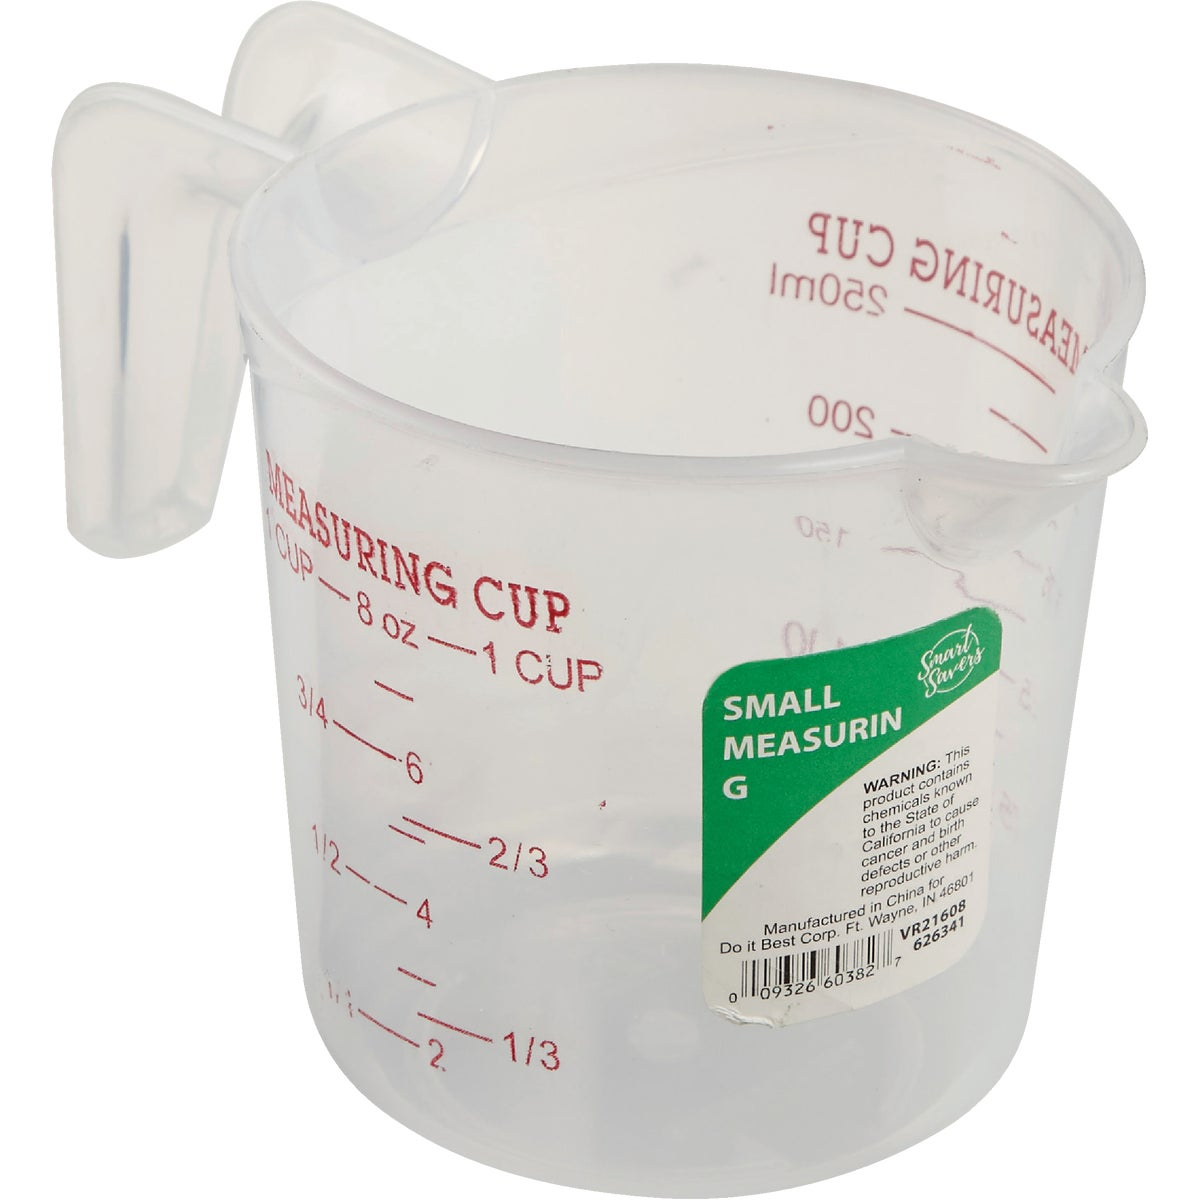 SMALL MEASURING CUP